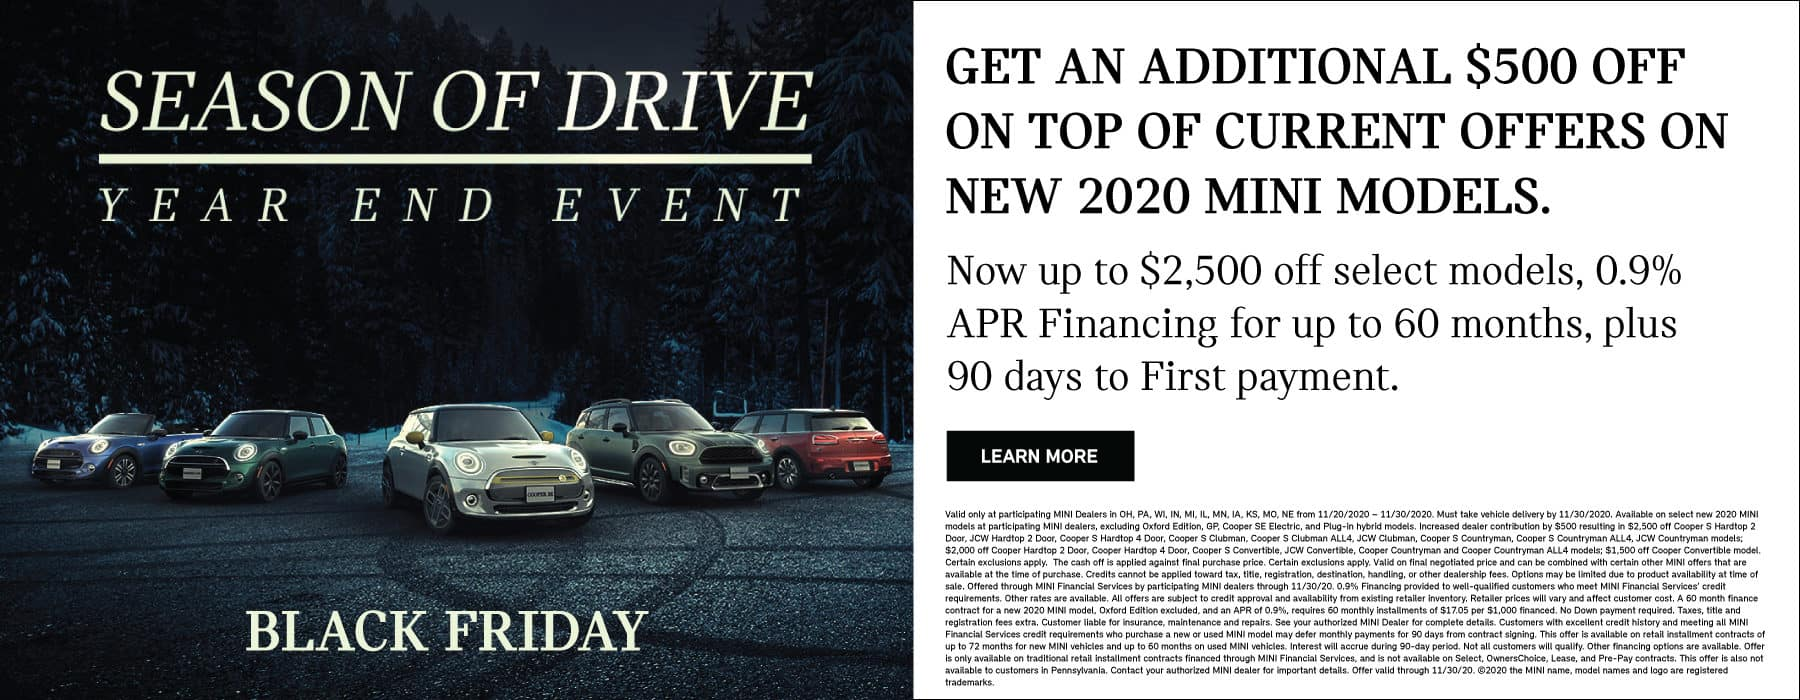 Get an additional $500 off on top of current offers on new 2020 MINI models. Now up to $2,500 off select models, 0.9% APR financing for up to 60 months, plus 90 days to first payment. Learn more button. See dealer for complete details. Family of MINIs parked on dark road. Season of Drive Year end event text overlay.